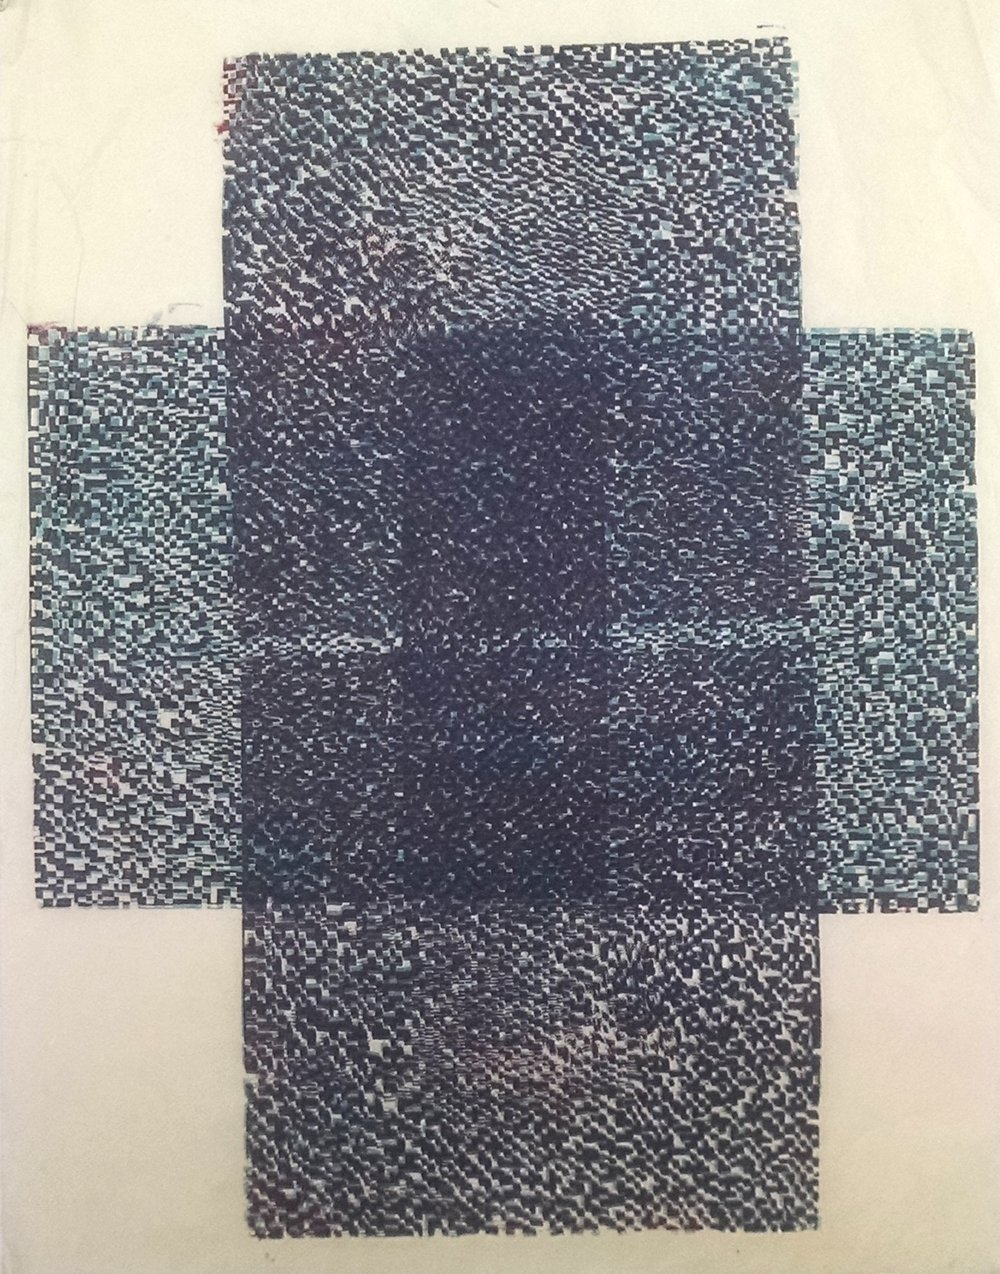 In Grain: Prints by Samantha Mitchell   Brodsky Gallery at the Kelly Writer's House, University of Pennsylvania, Philadelphia,PA  January 2015